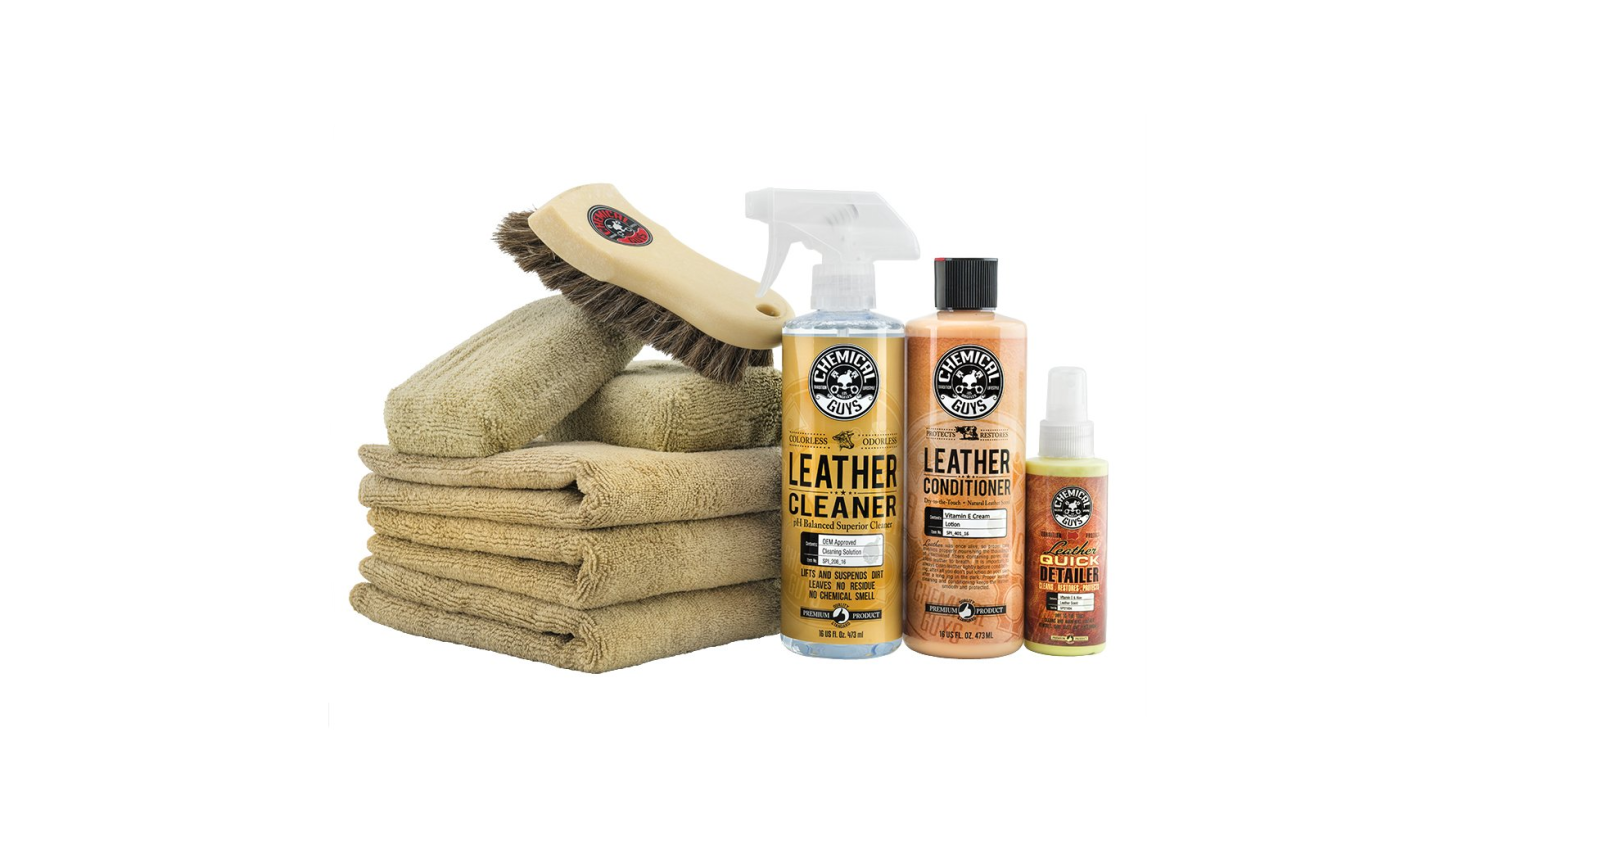 Save 20% on this well-rated Chemical Guys Leather Care Kit, now at an Amazon all-time low of $40